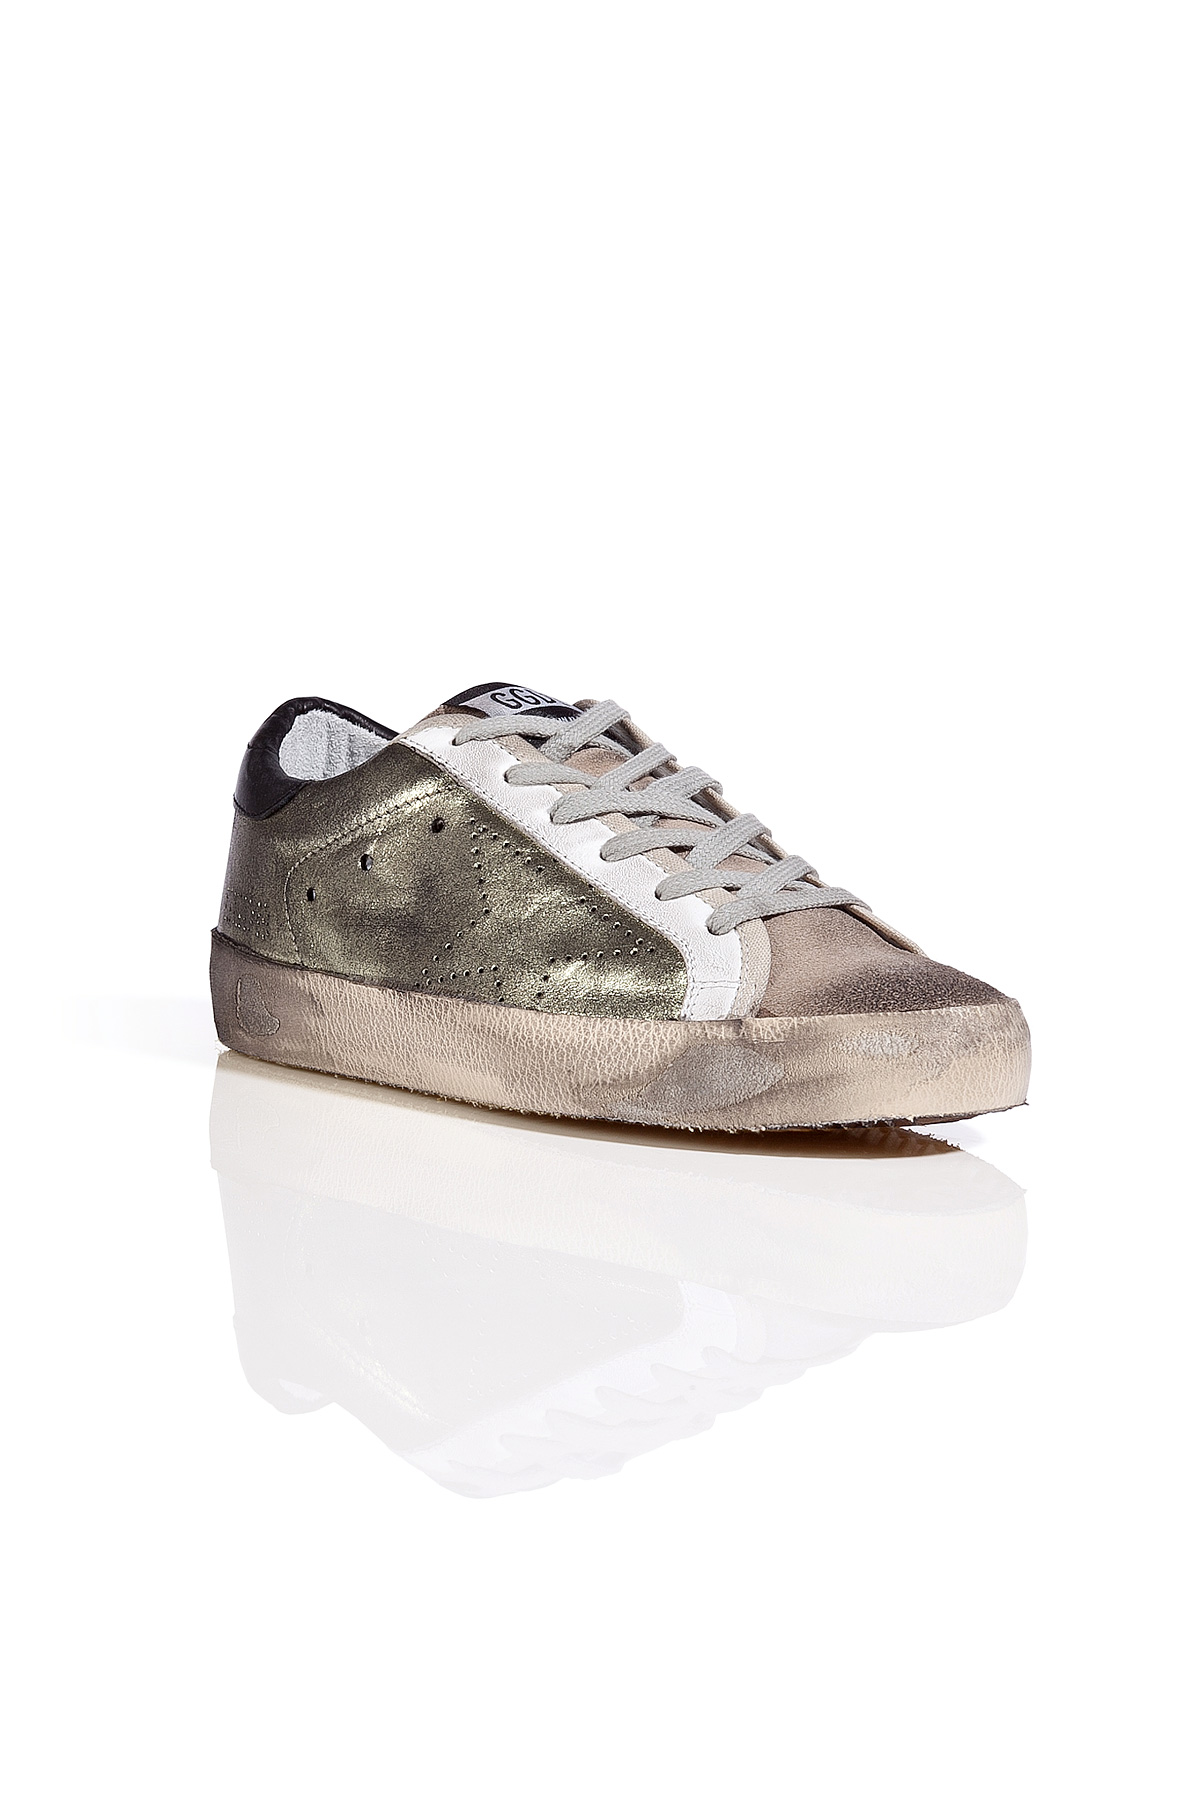 golden goose deluxe brand leather superstar sneakers in whitelime in white lyst. Black Bedroom Furniture Sets. Home Design Ideas